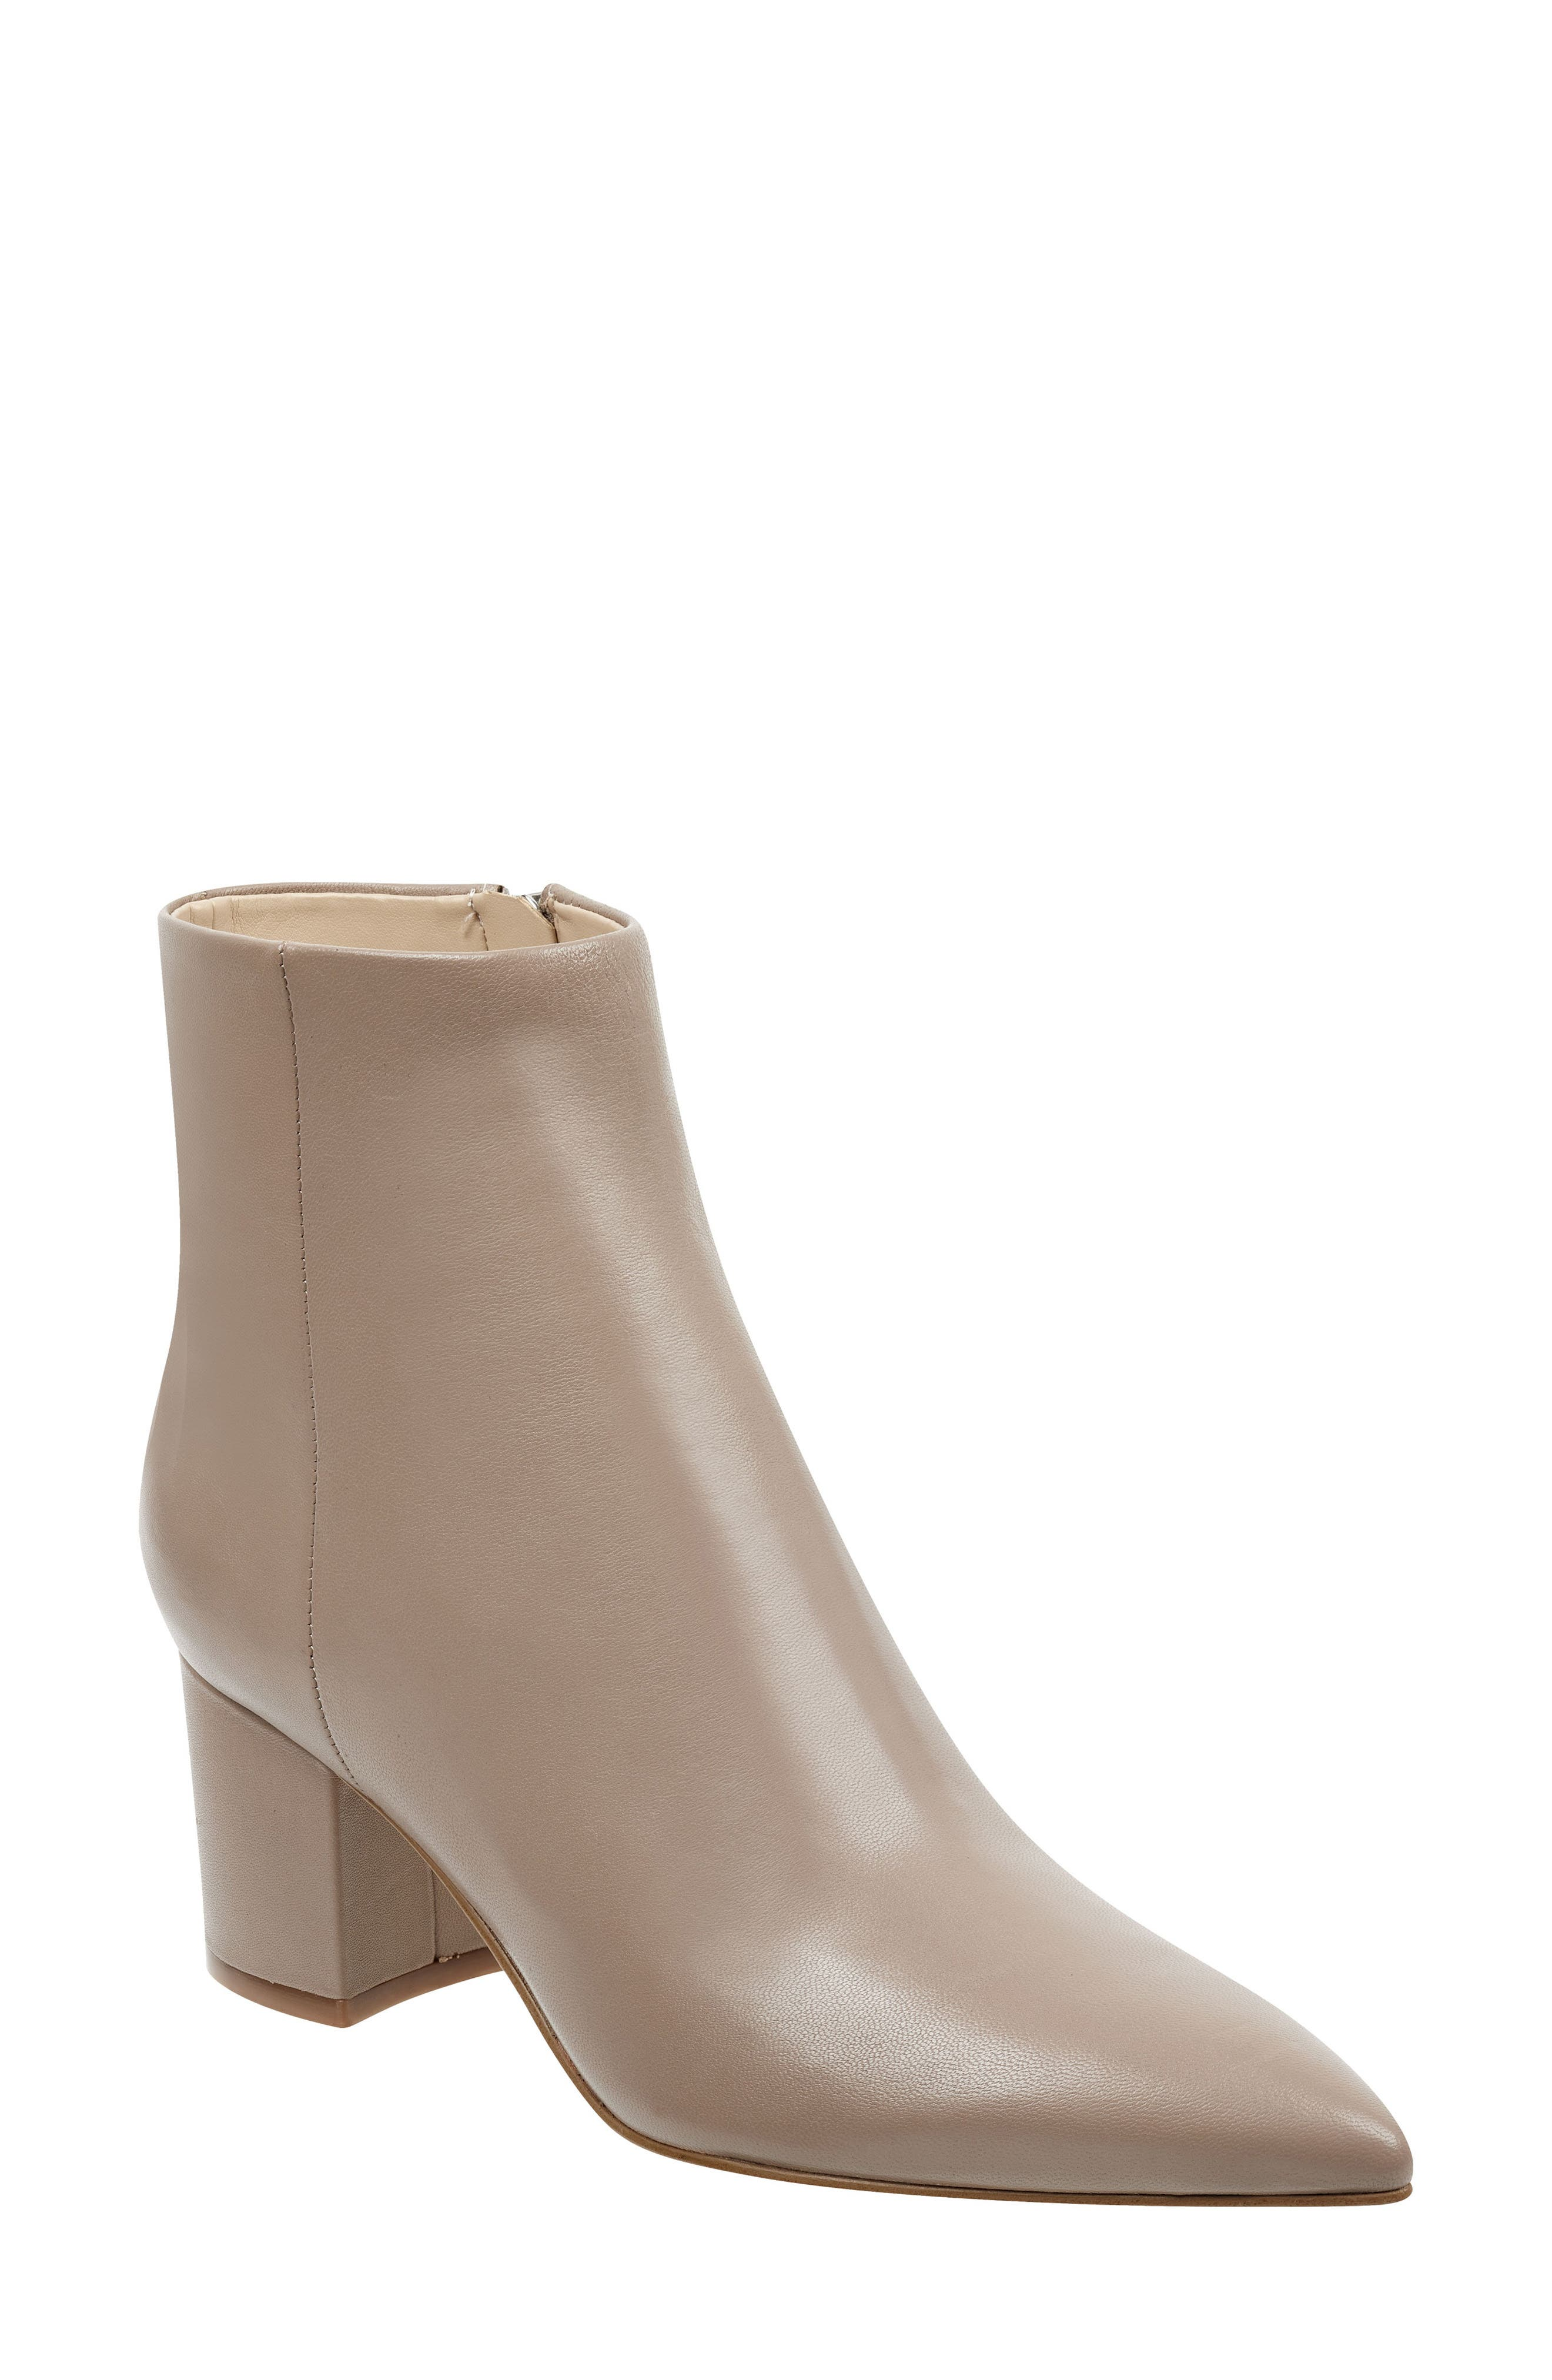 MARC FISHER LTD, Jarli Bootie, Main thumbnail 1, color, TAUPE LEATHER